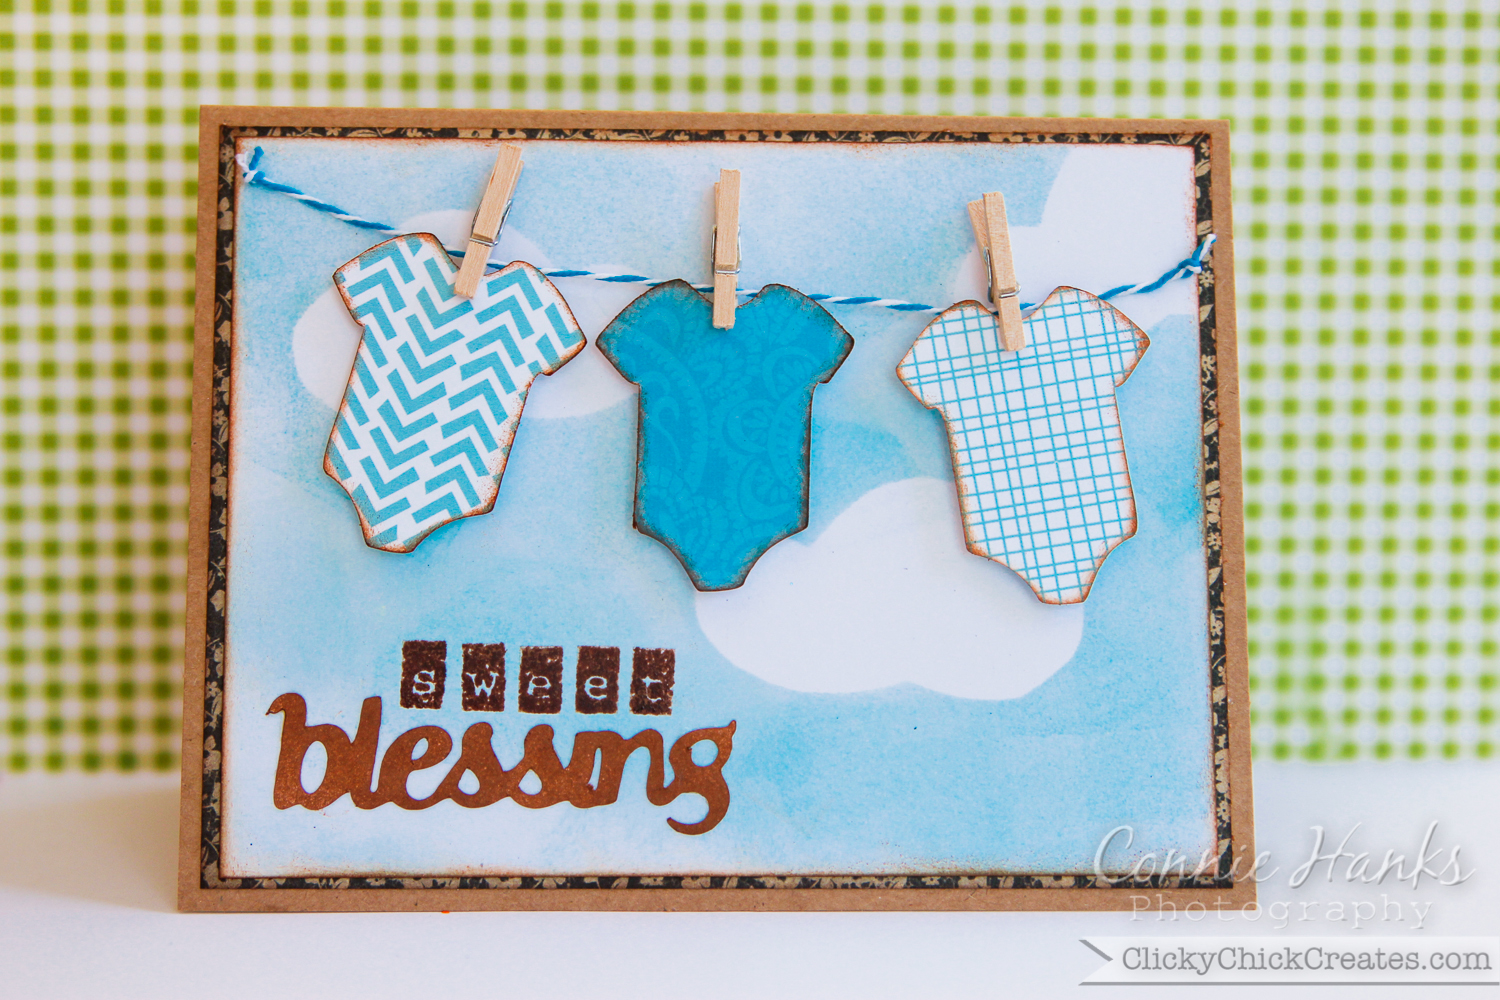 ClickyChickCreates.com // Sweet Blessing Baby Boy Shower Card With Onesies  On A Clothesline